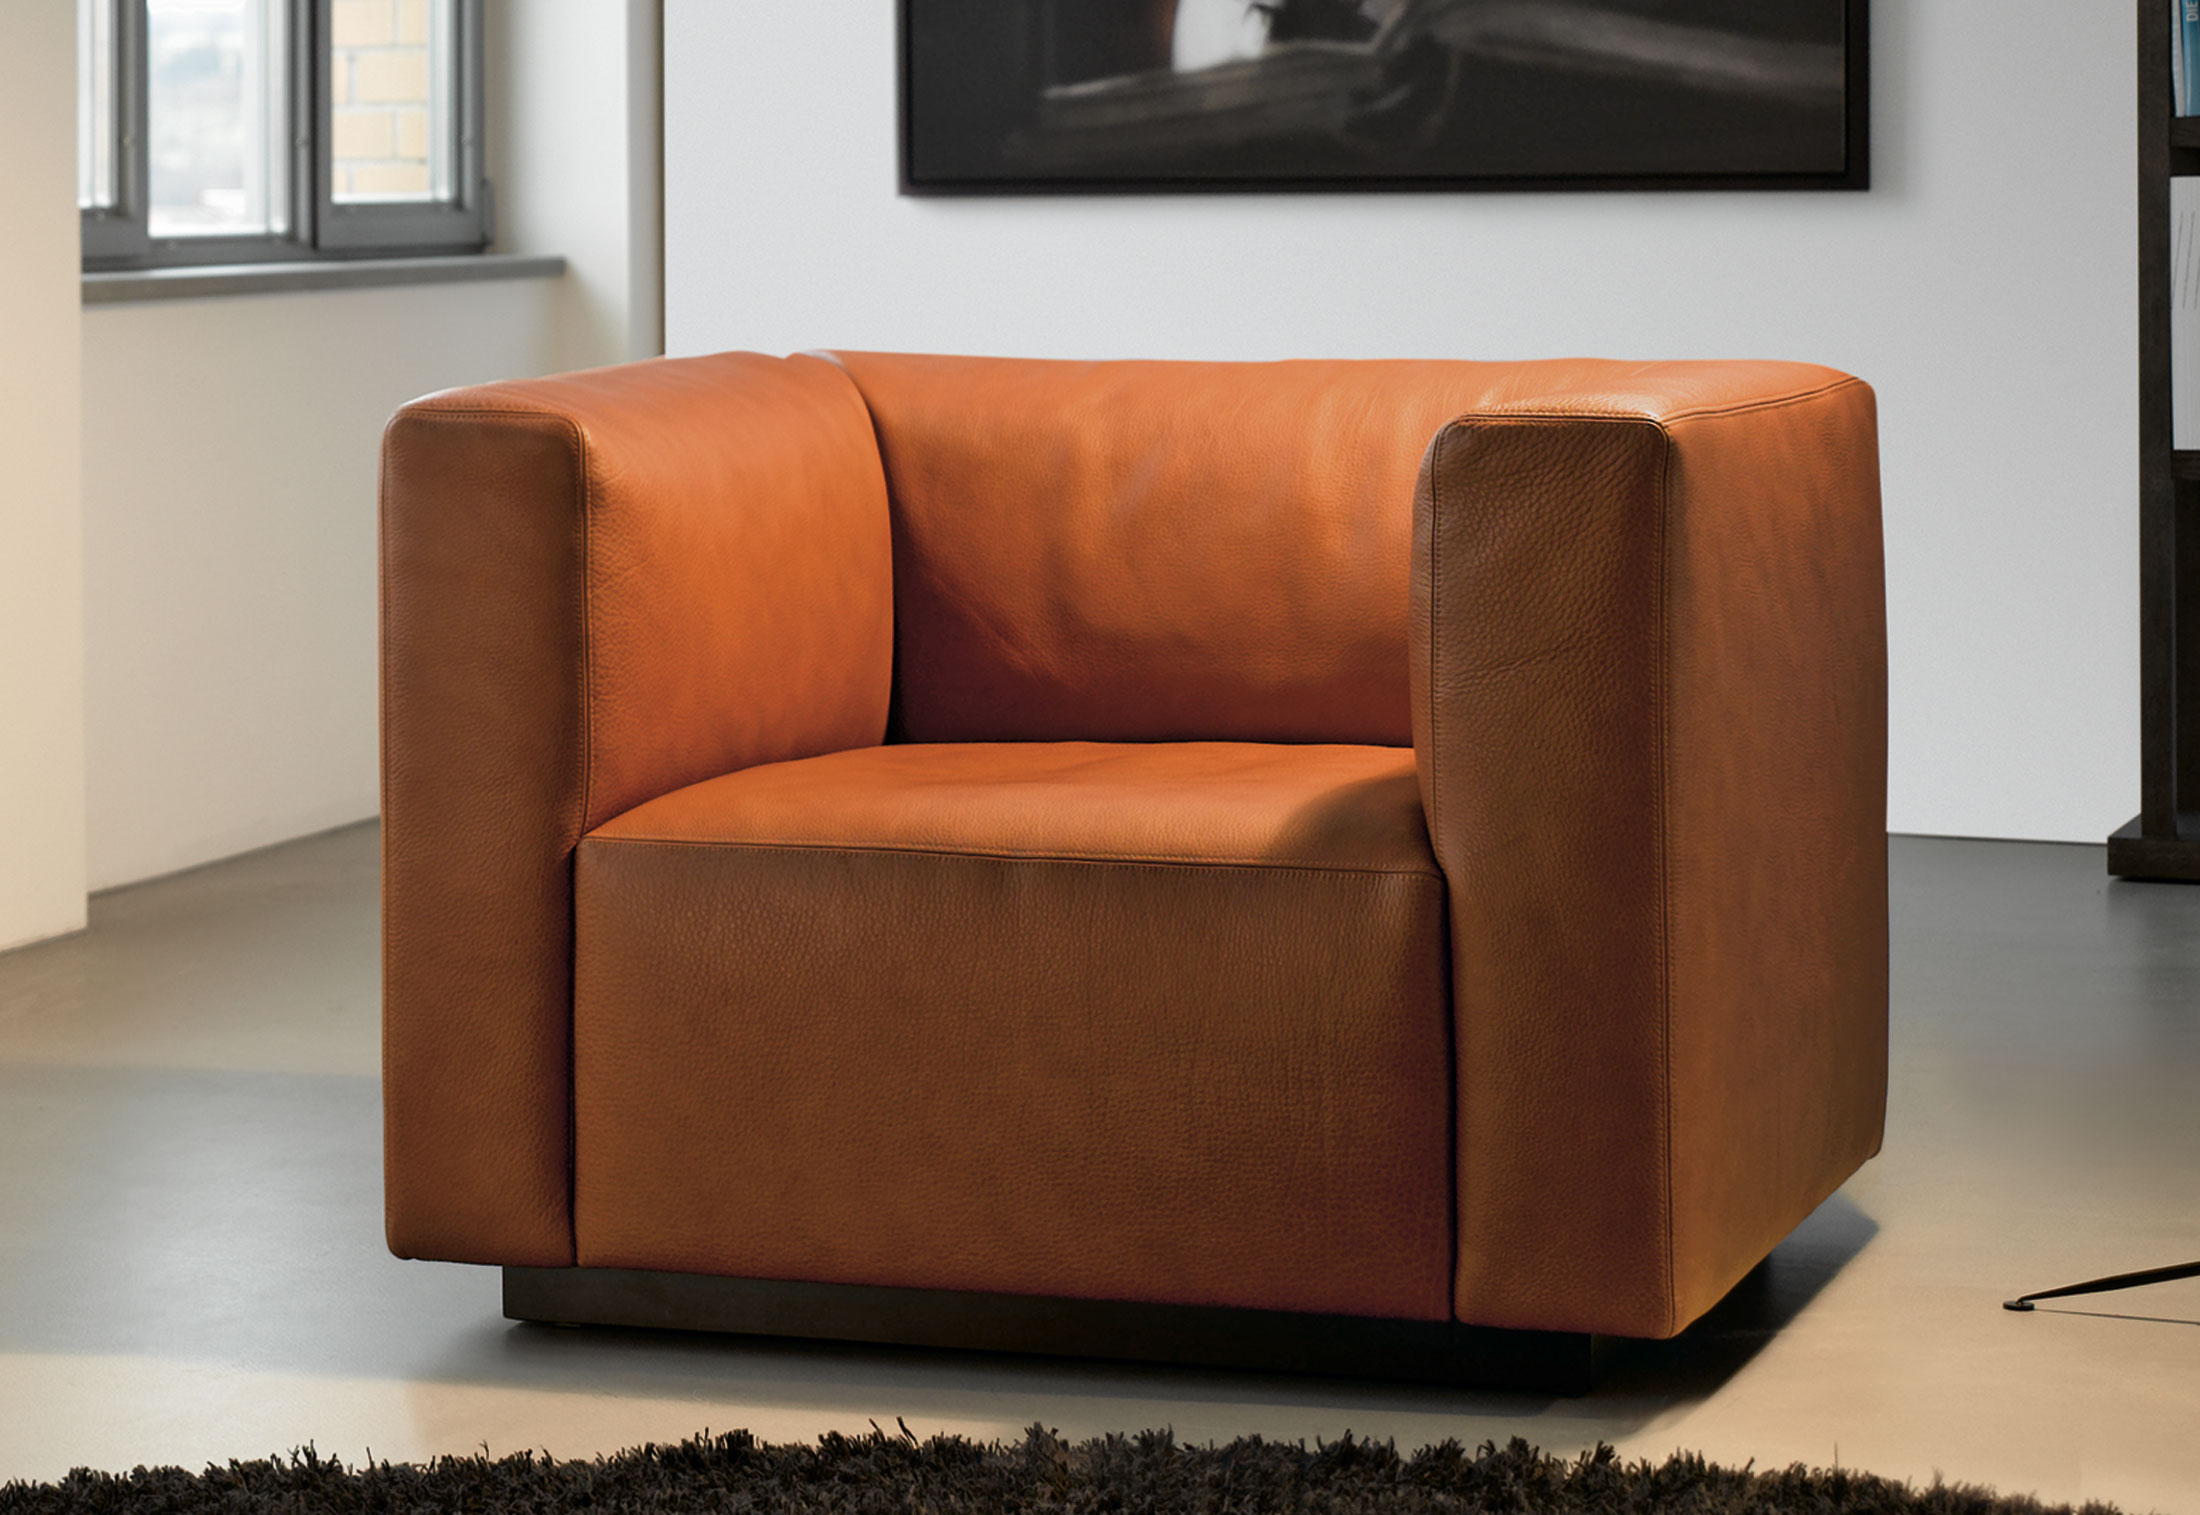 Living Landscape 740 Armchair By Walter Knoll